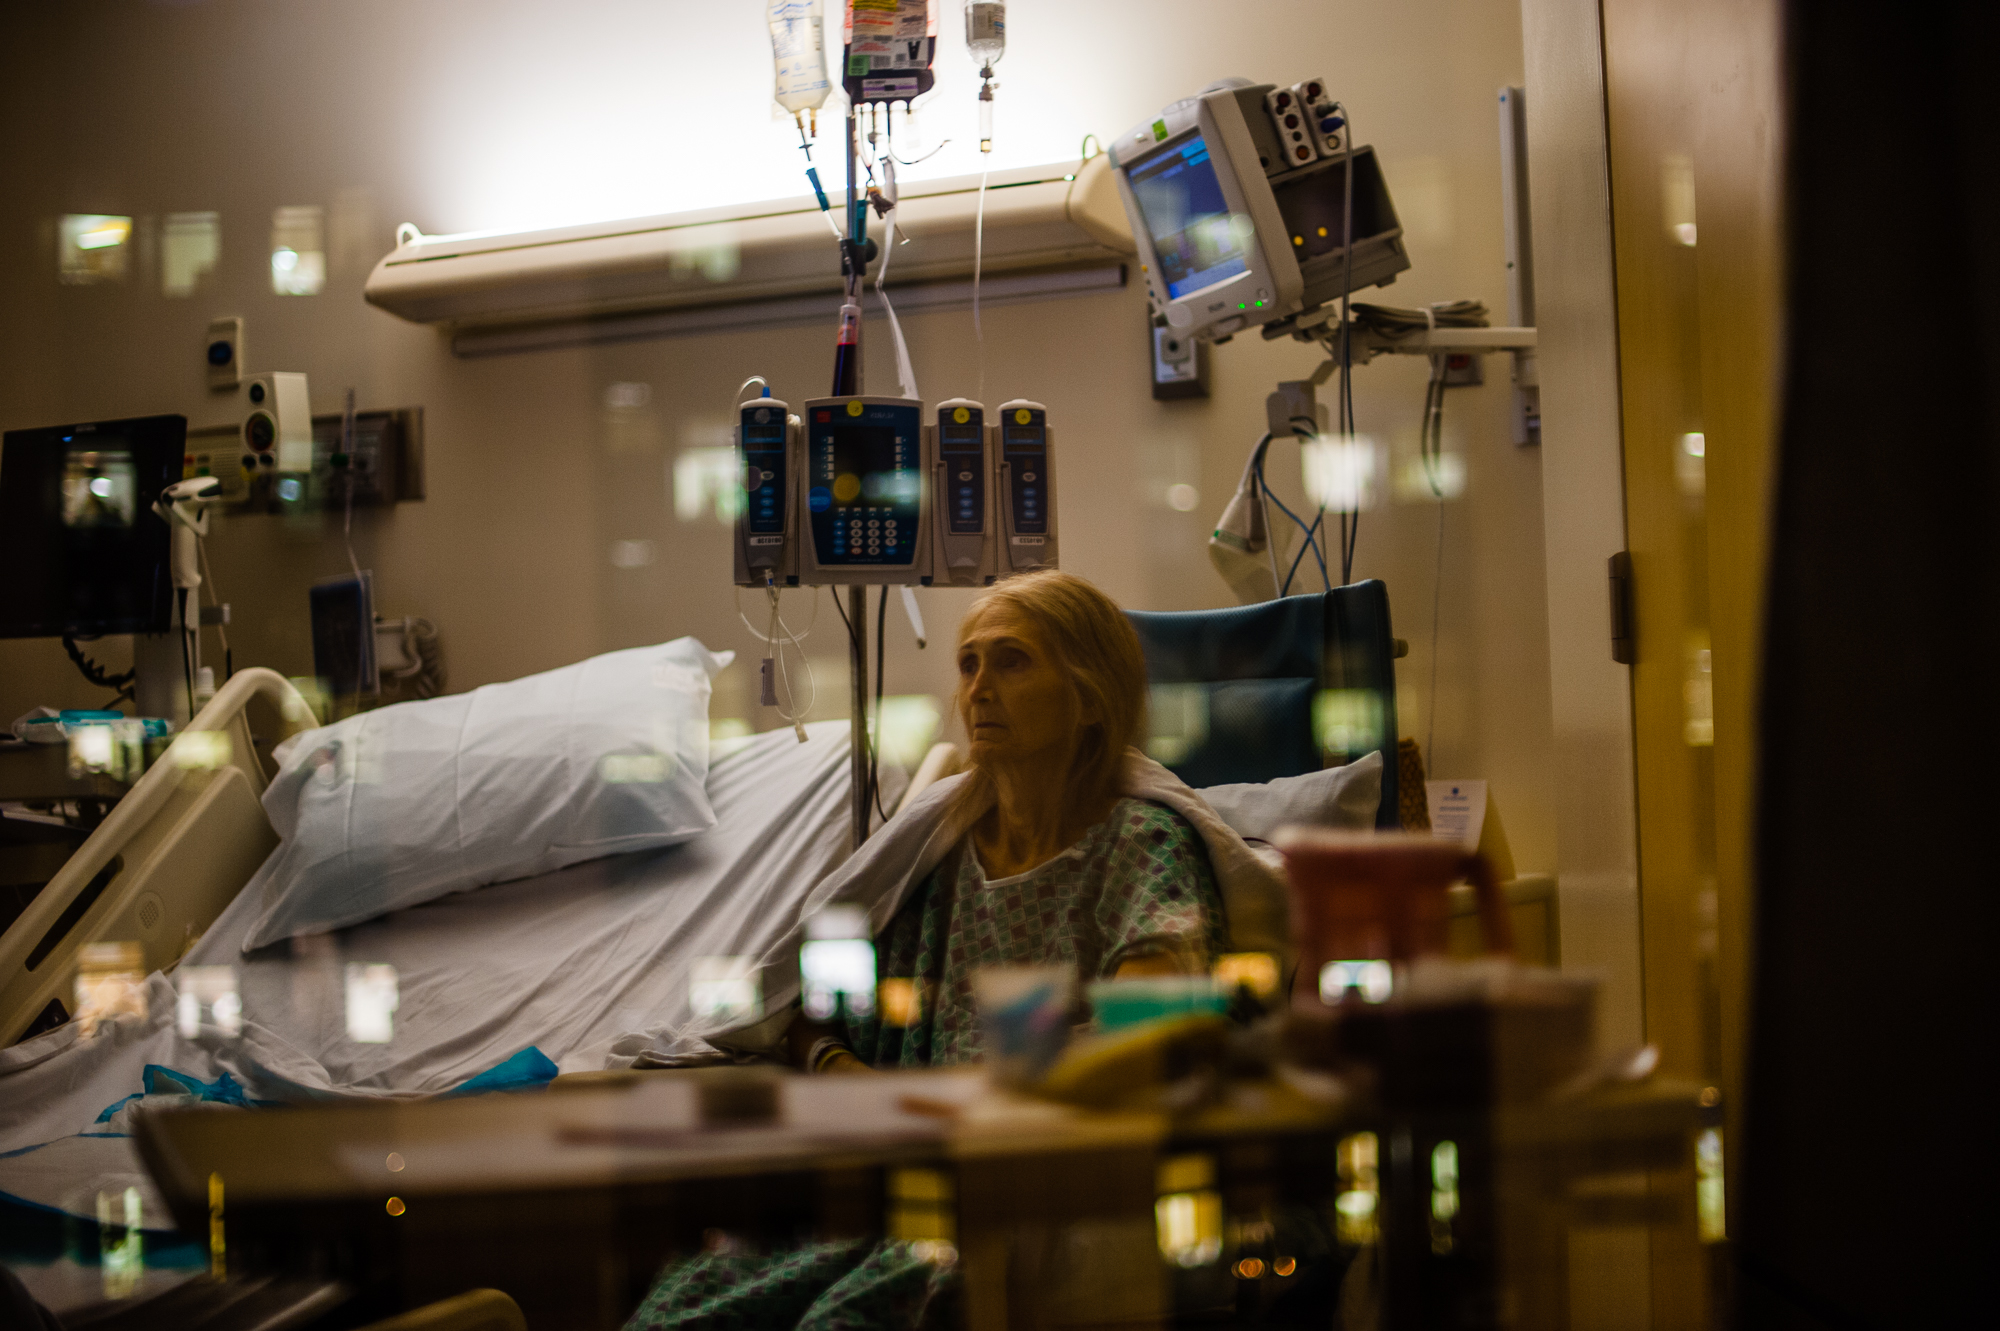 Rosie sits in a hospital room in Los Angeles at night.